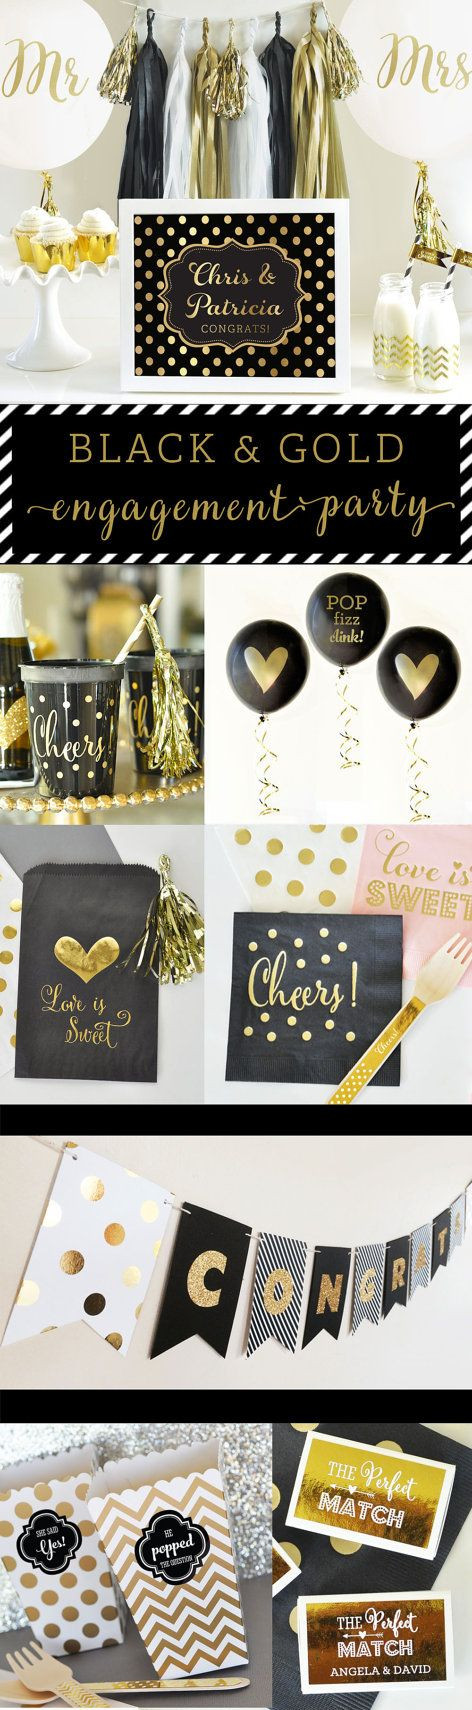 Black And Gold Engagement Party Ideas  17 Best ideas about Black Gold Party on Pinterest